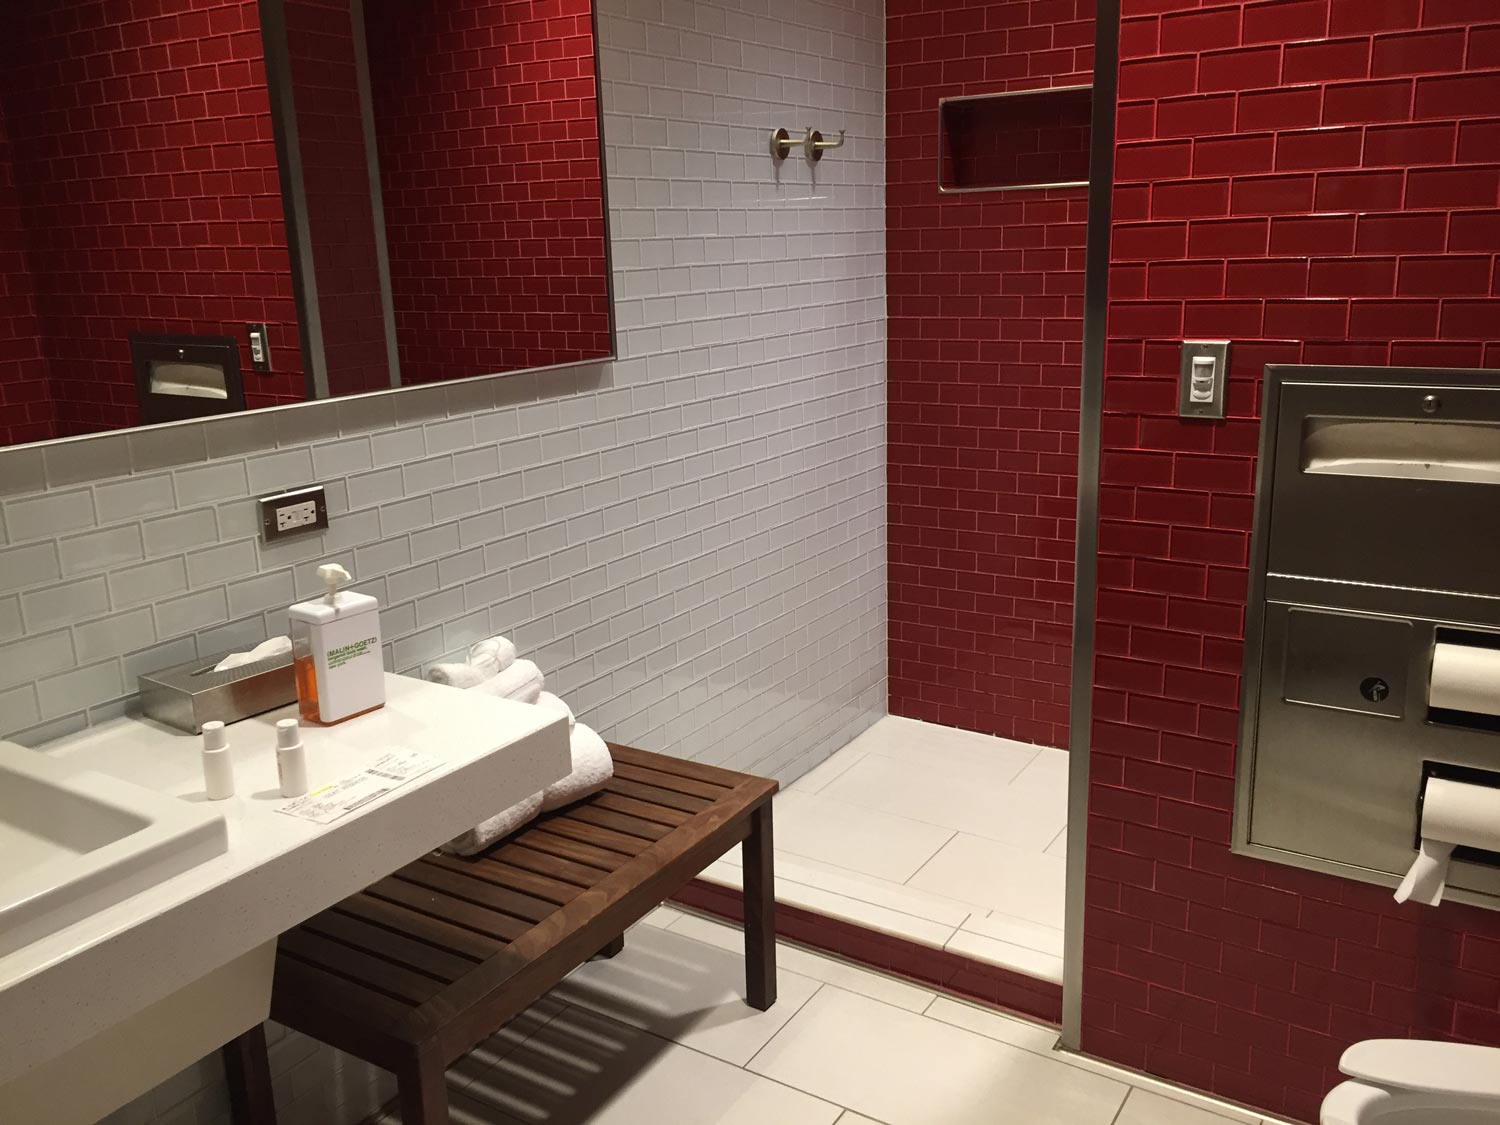 airport lounge access - Delta Sky Club Atlanta - shower